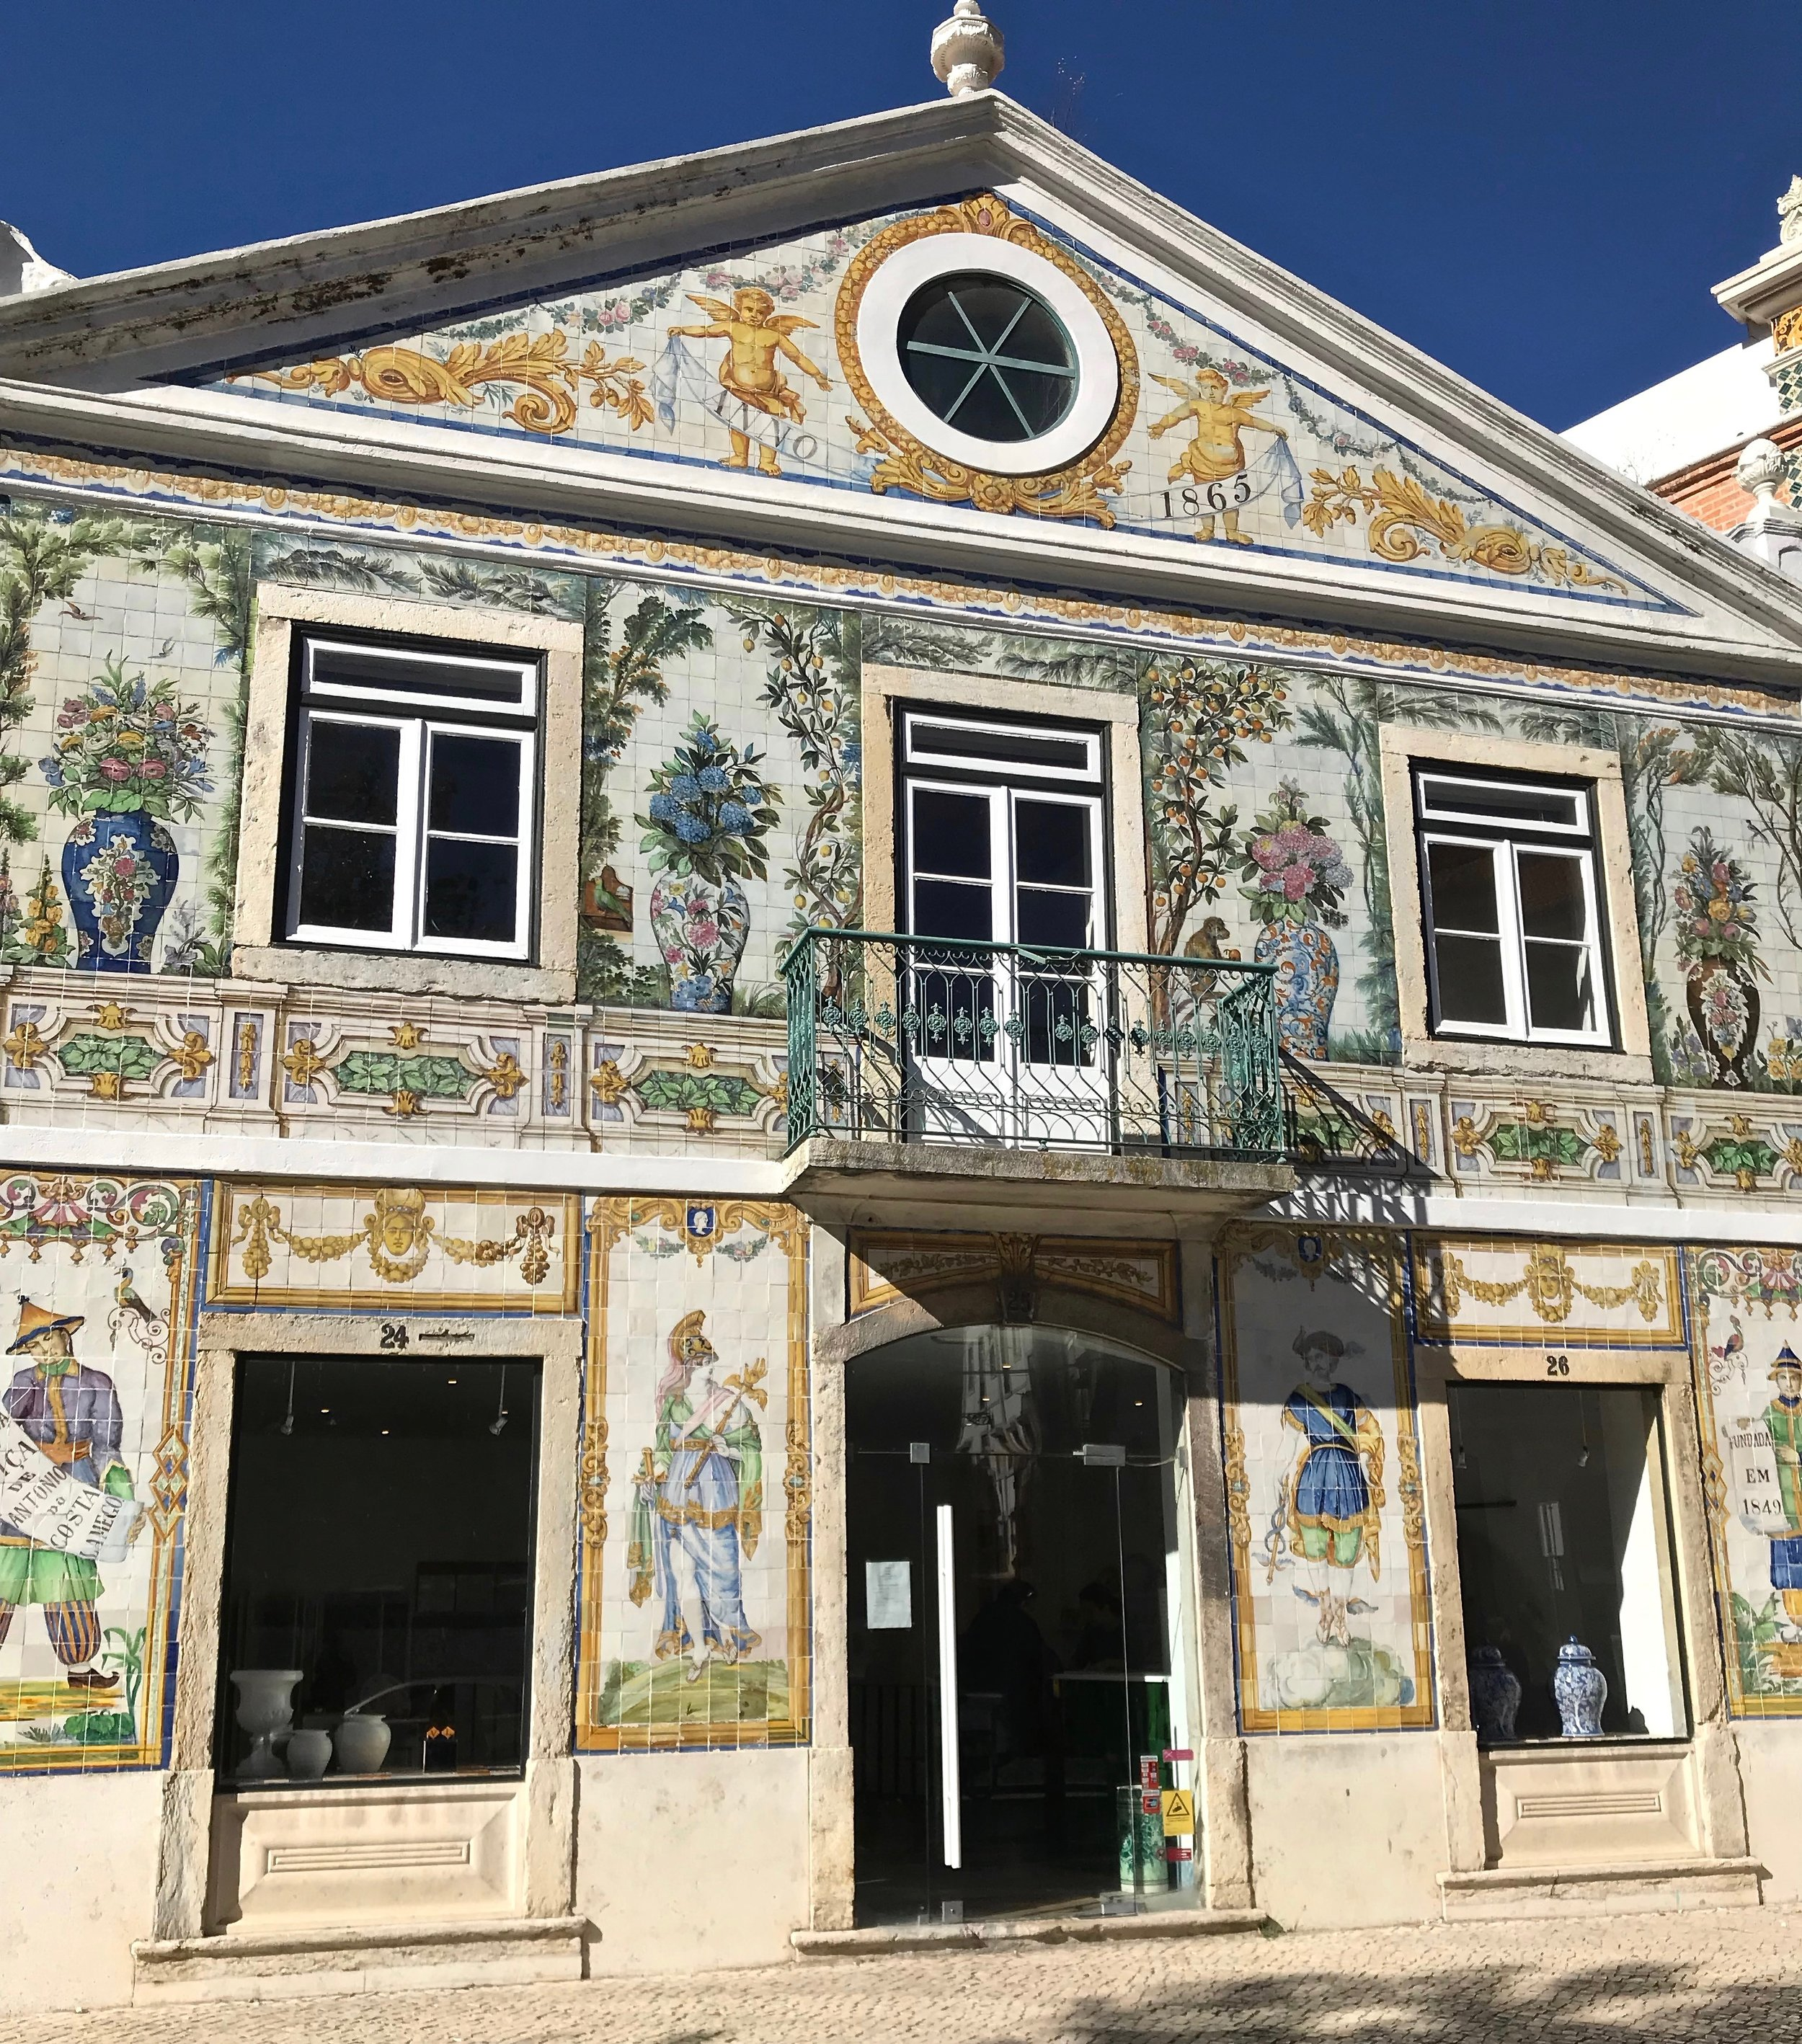 why re the buildings in Portugal covered in tile?